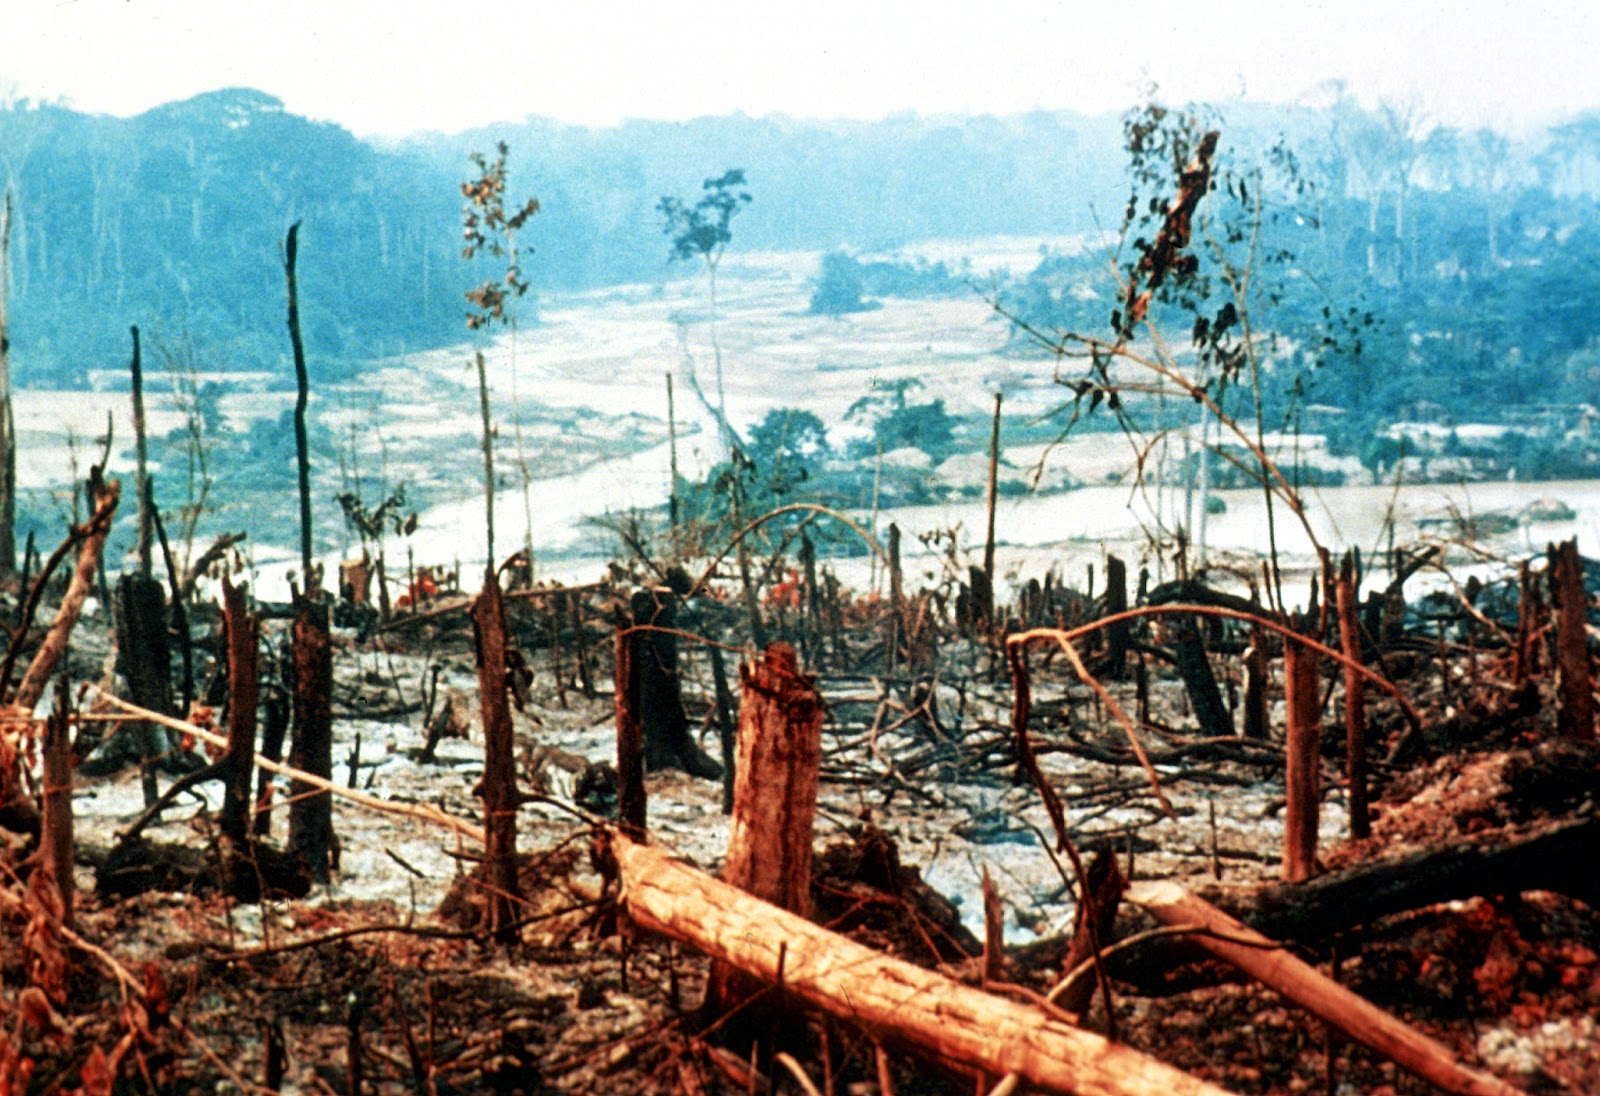 the destruction of the rain forests Protecting the amazon rain forest requires an extremely strategic, multifaceted  plan the variables contributing to its destruction are complex.